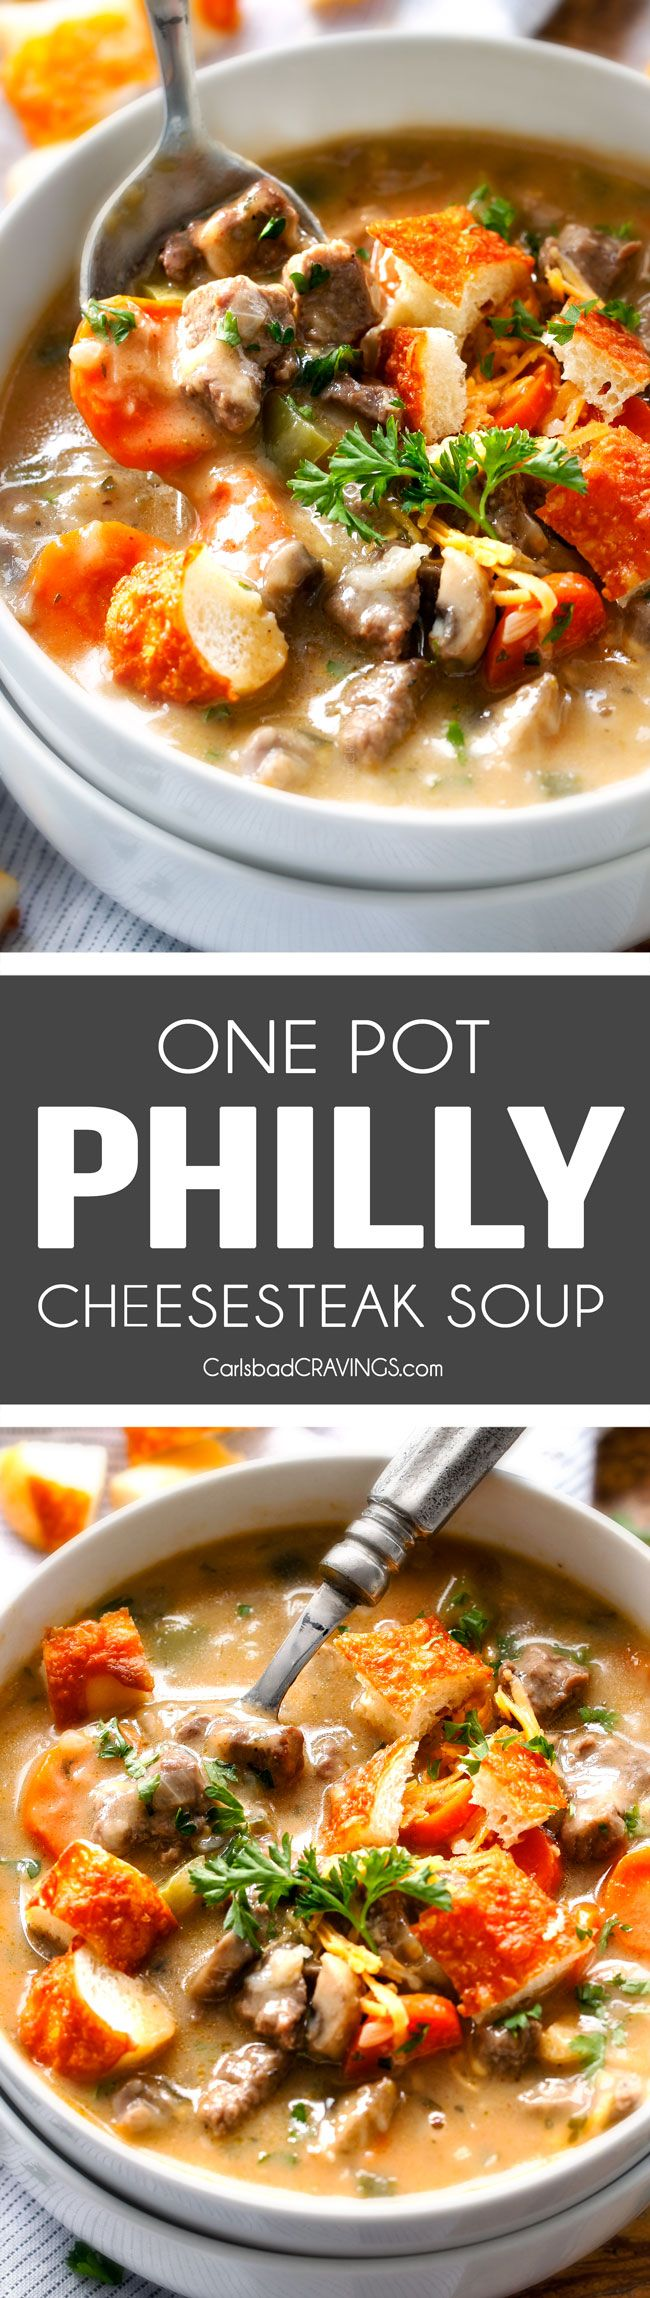 ONE POT Philly Cheesesteak Soup - My family LOVES this soup, we make at least twice a month! Its bursting with steak, peppers, onions, mushrooms in a flavor exploding cheesy soup all topped with cheesy seasoned croutons!